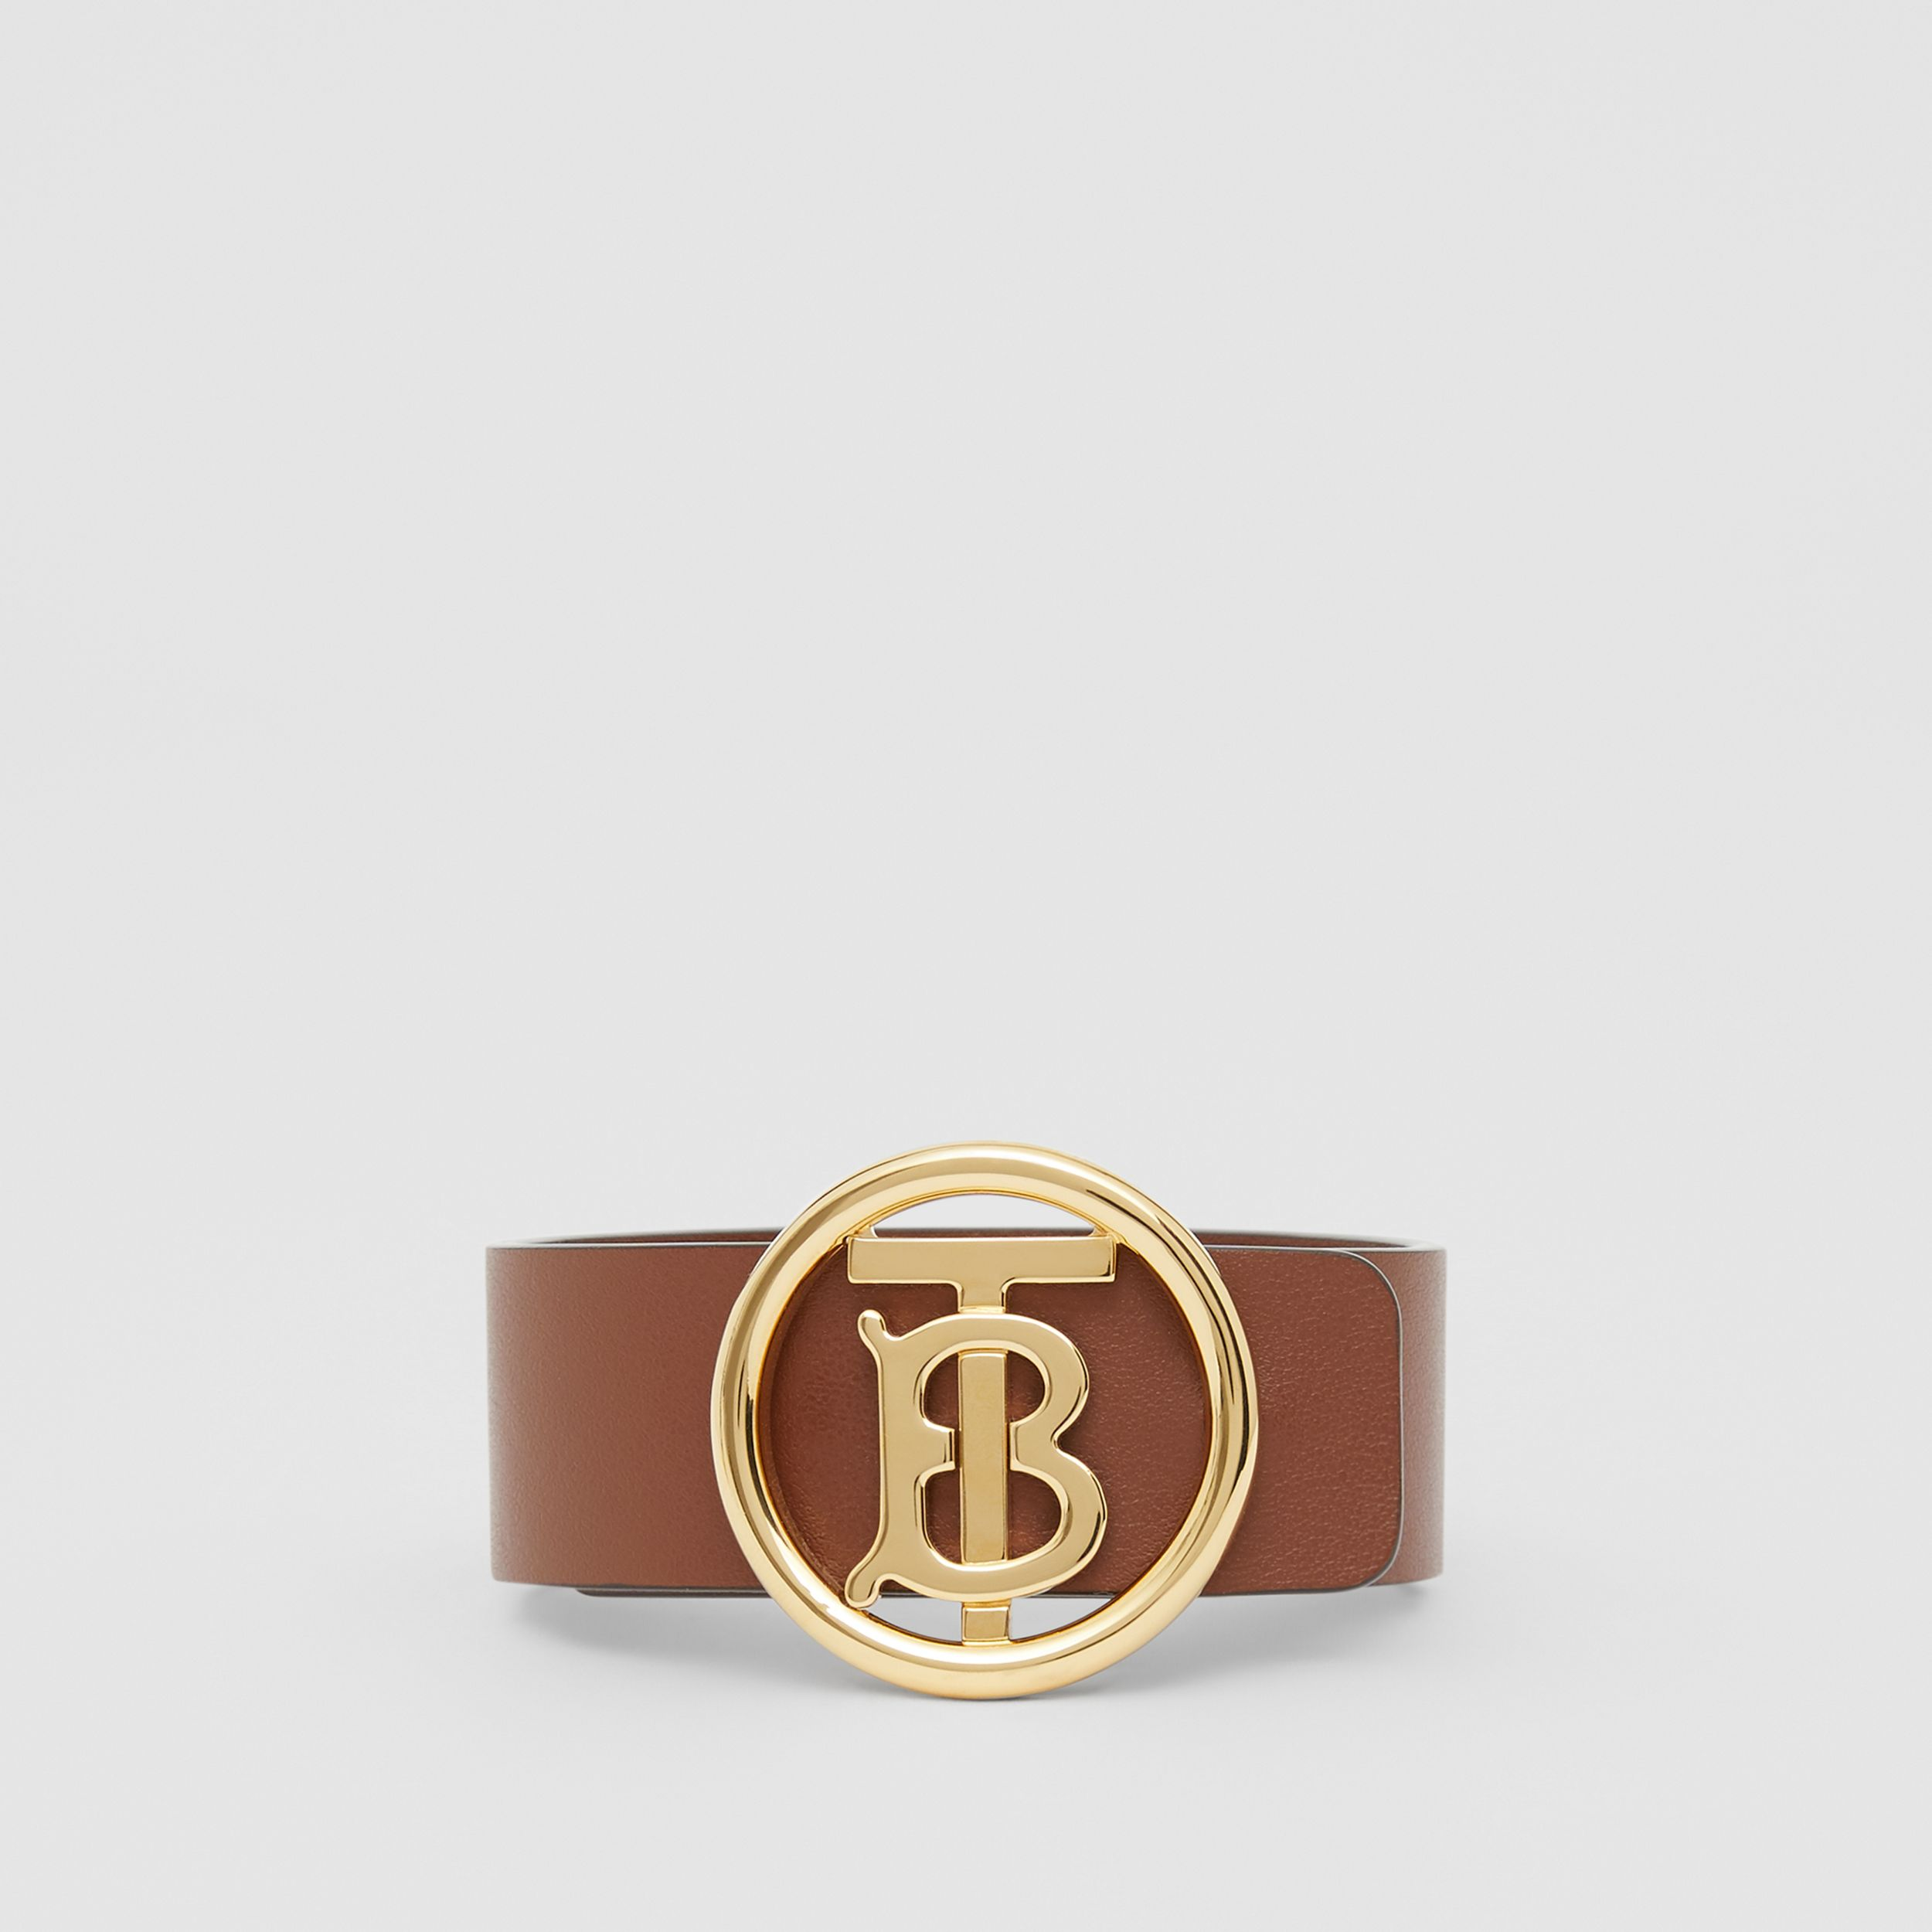 Monogram Motif Leather Bracelet in Tan | Burberry - 1